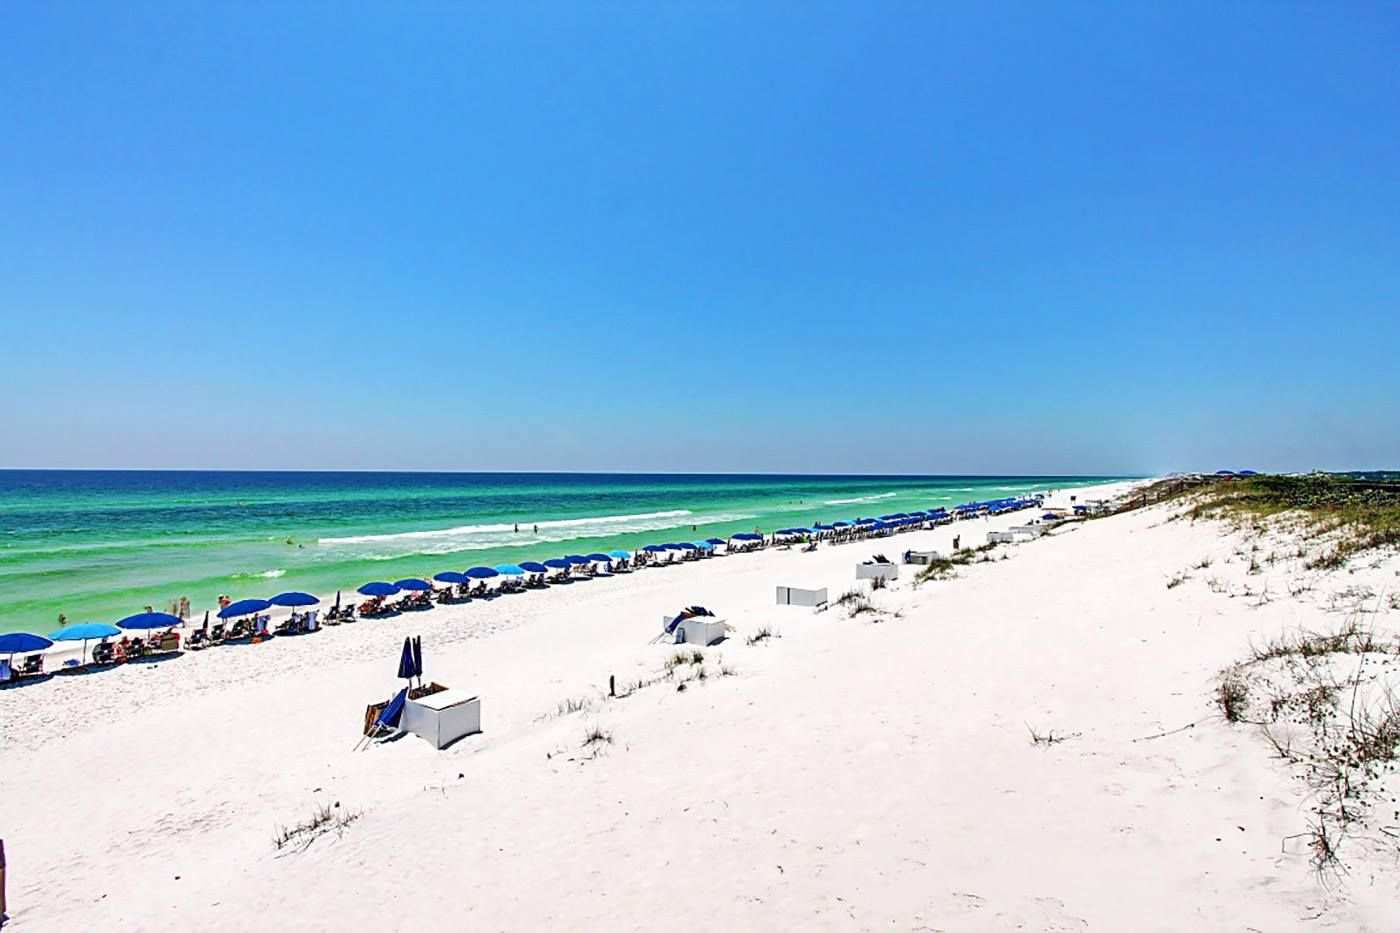 Picture Yourself Sitting In One Of These Chairs In Destin Panama City Beach Vacation Panama City Beach Beach Vacation